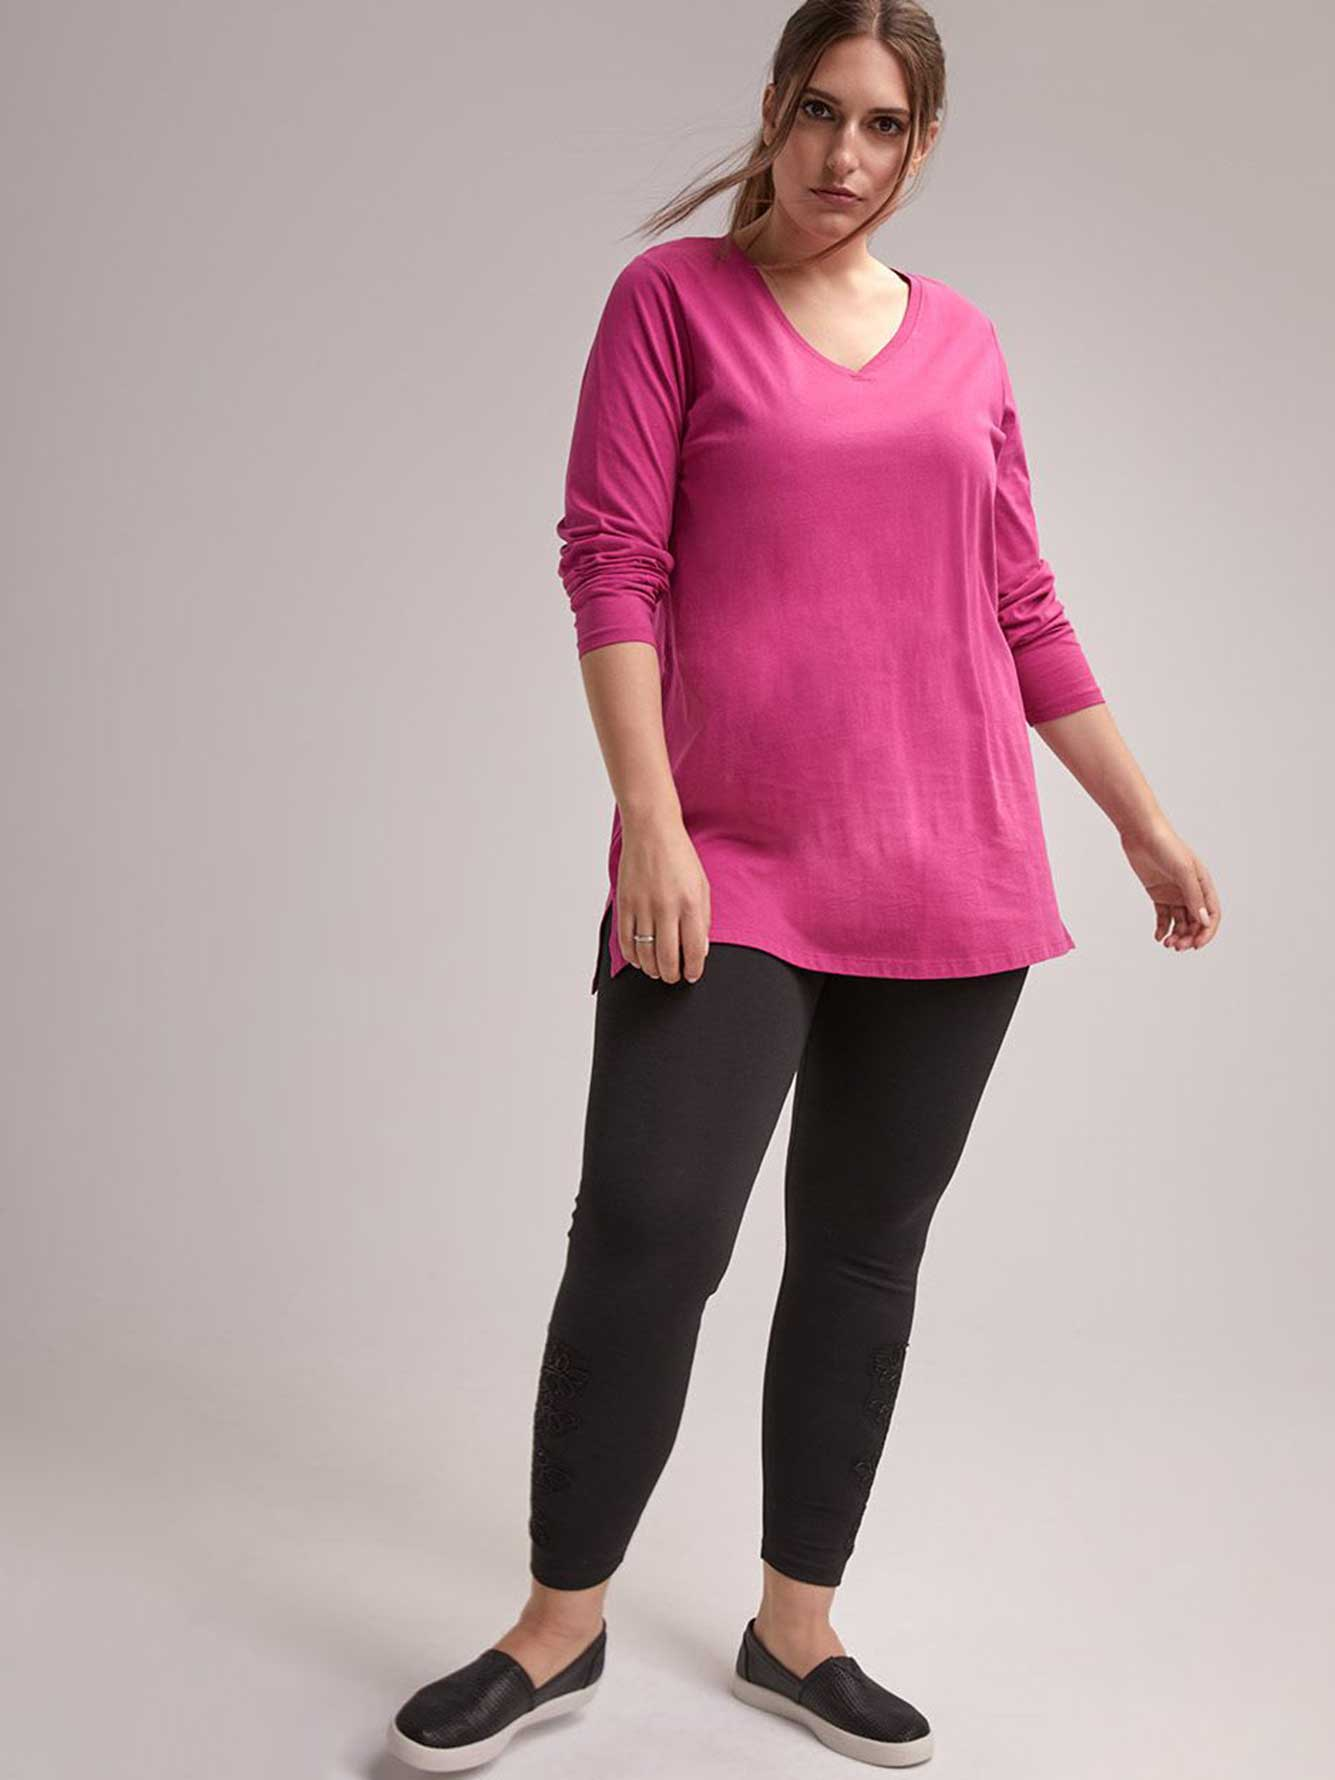 Legging with Lace Detail